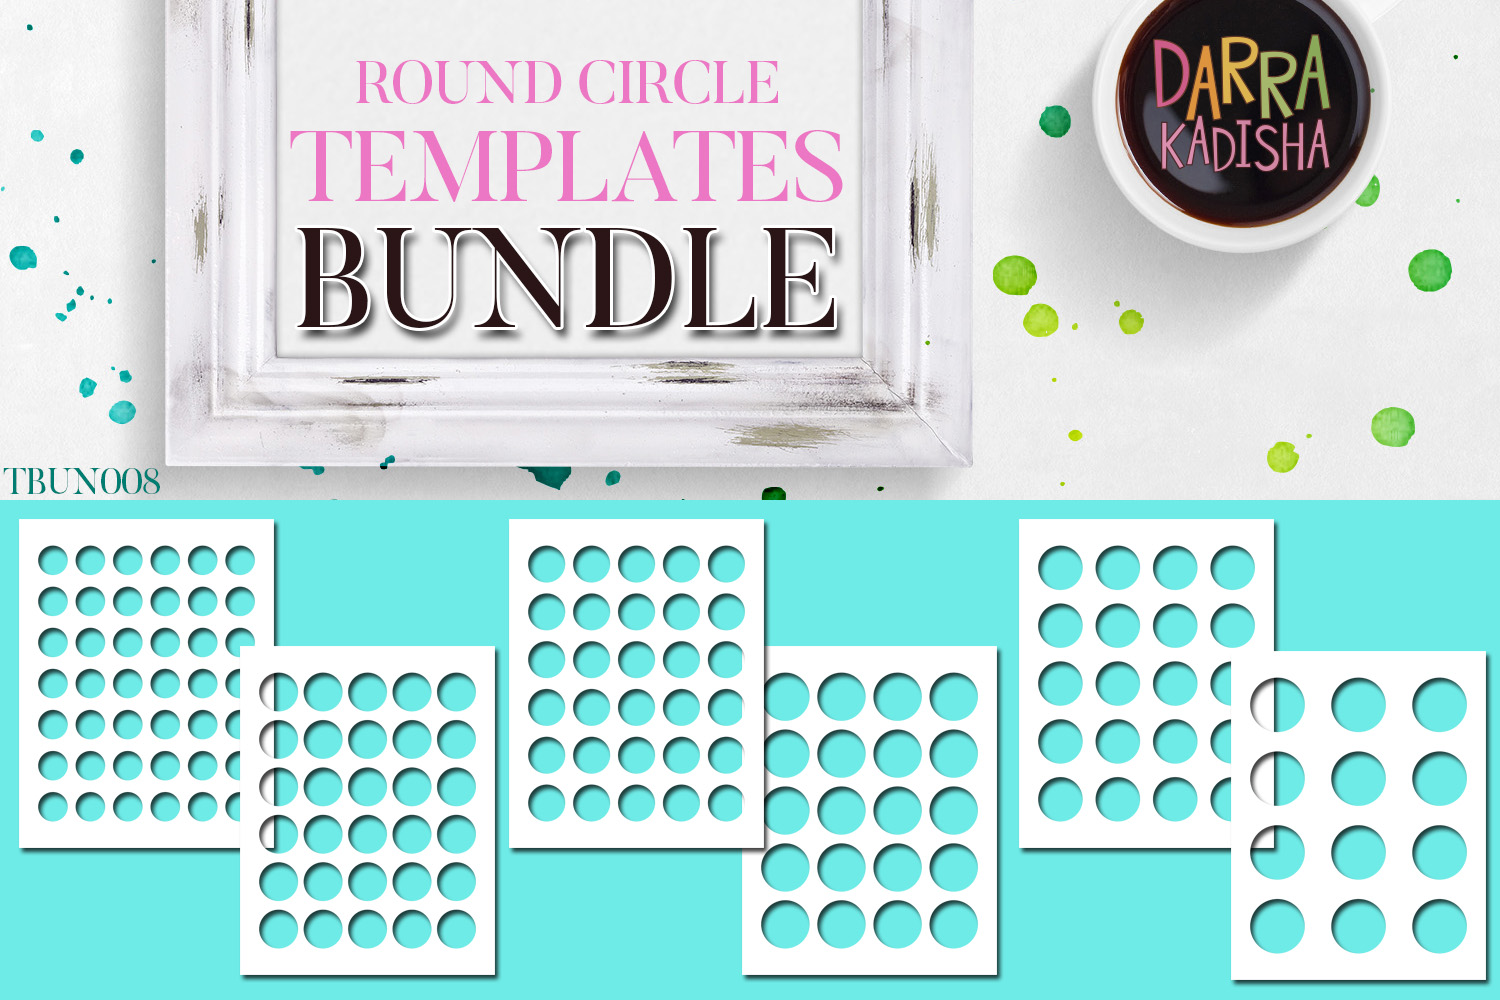 Round Circles Templates Bundle Vol. 8 example image 1